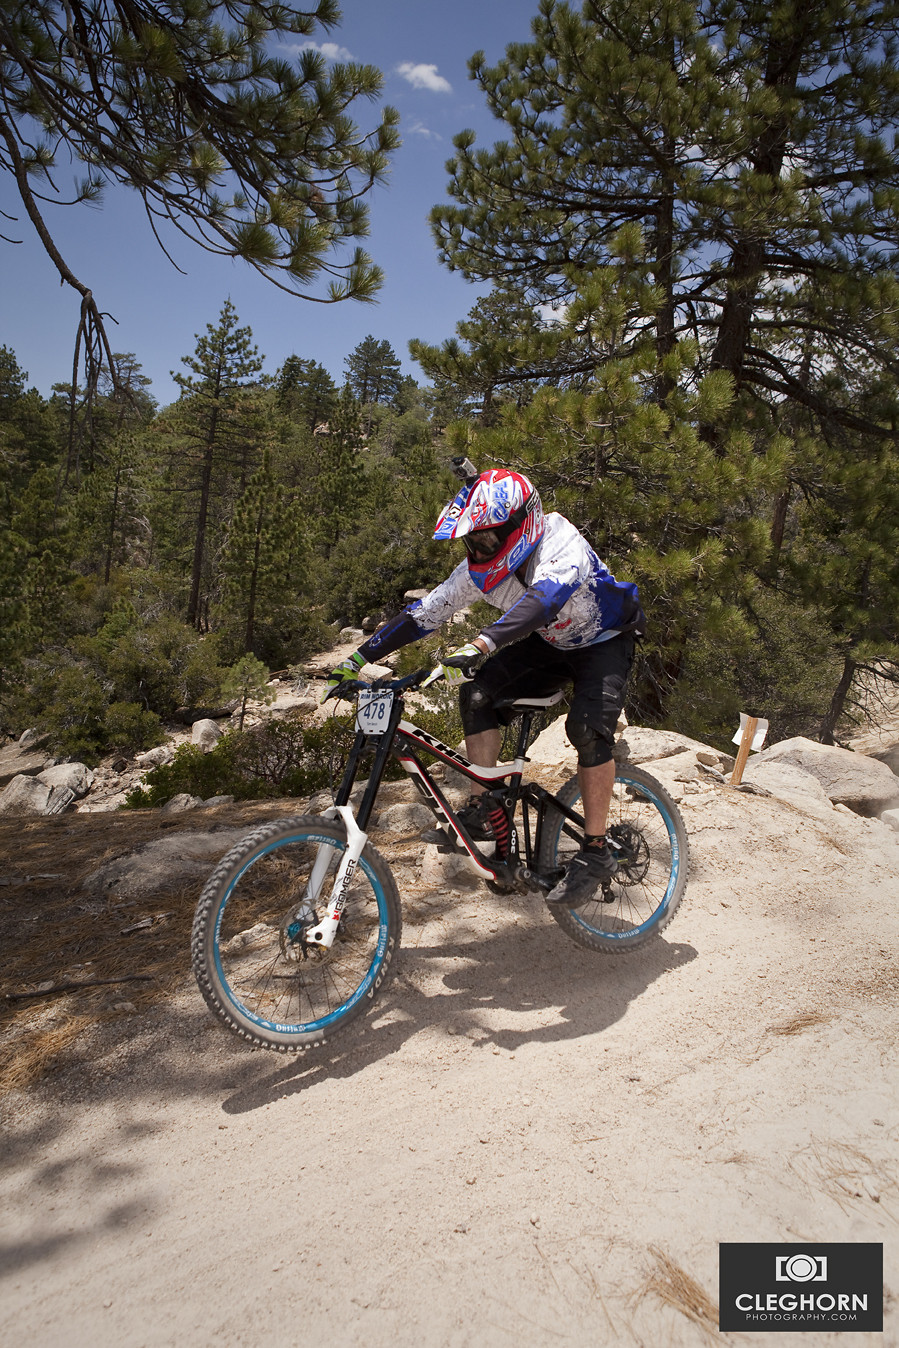 MG 0474 - Cleghorn Photography - Mountain Biking Pictures - Vital MTB